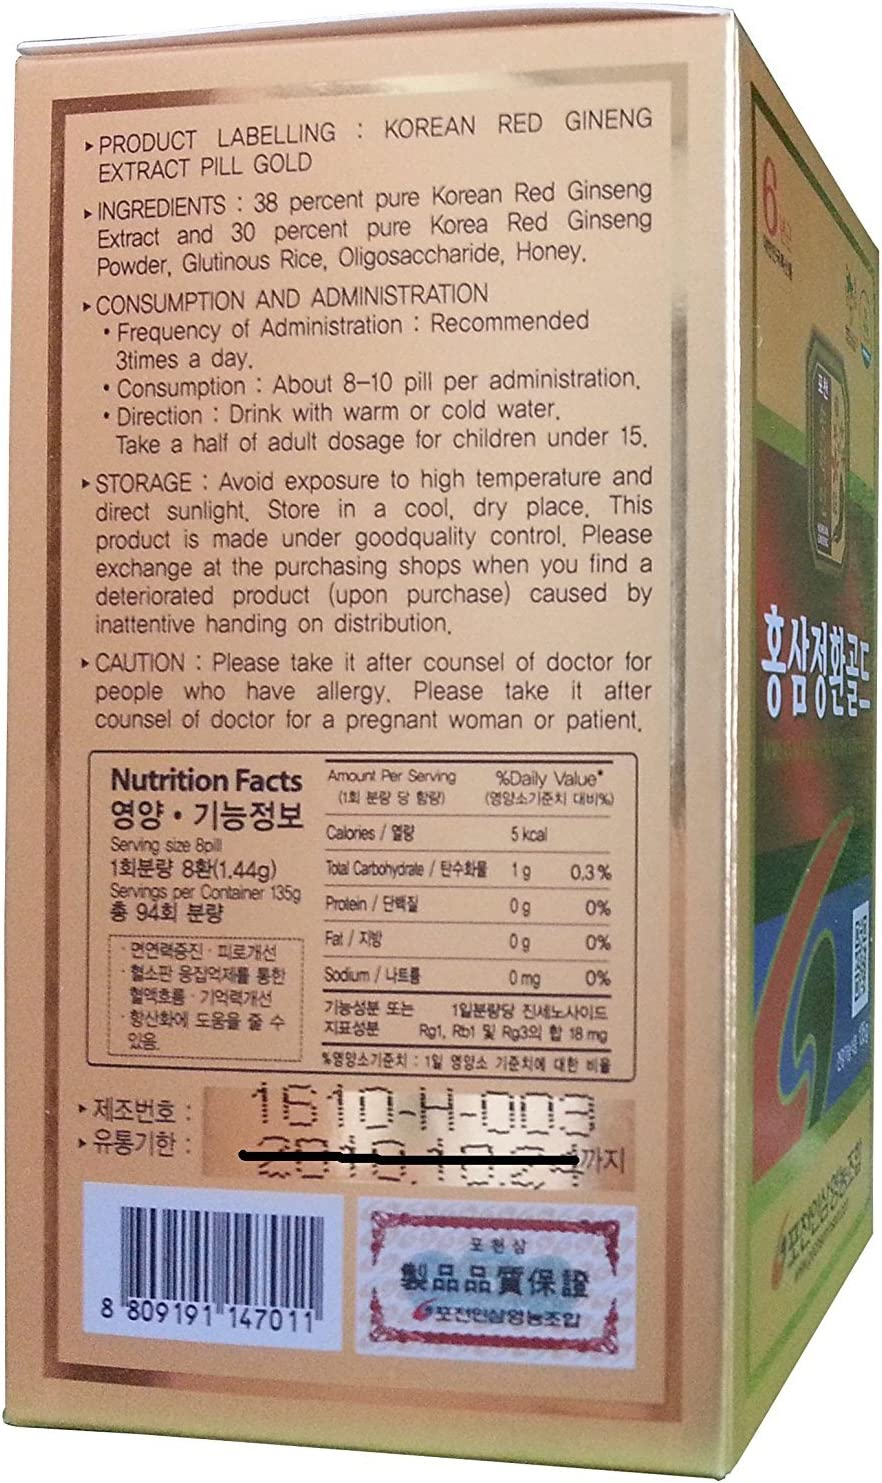 Pocheon 135g Korean 6 Years Panax Red Ginseng Roots Pills Gold, 68 Extract